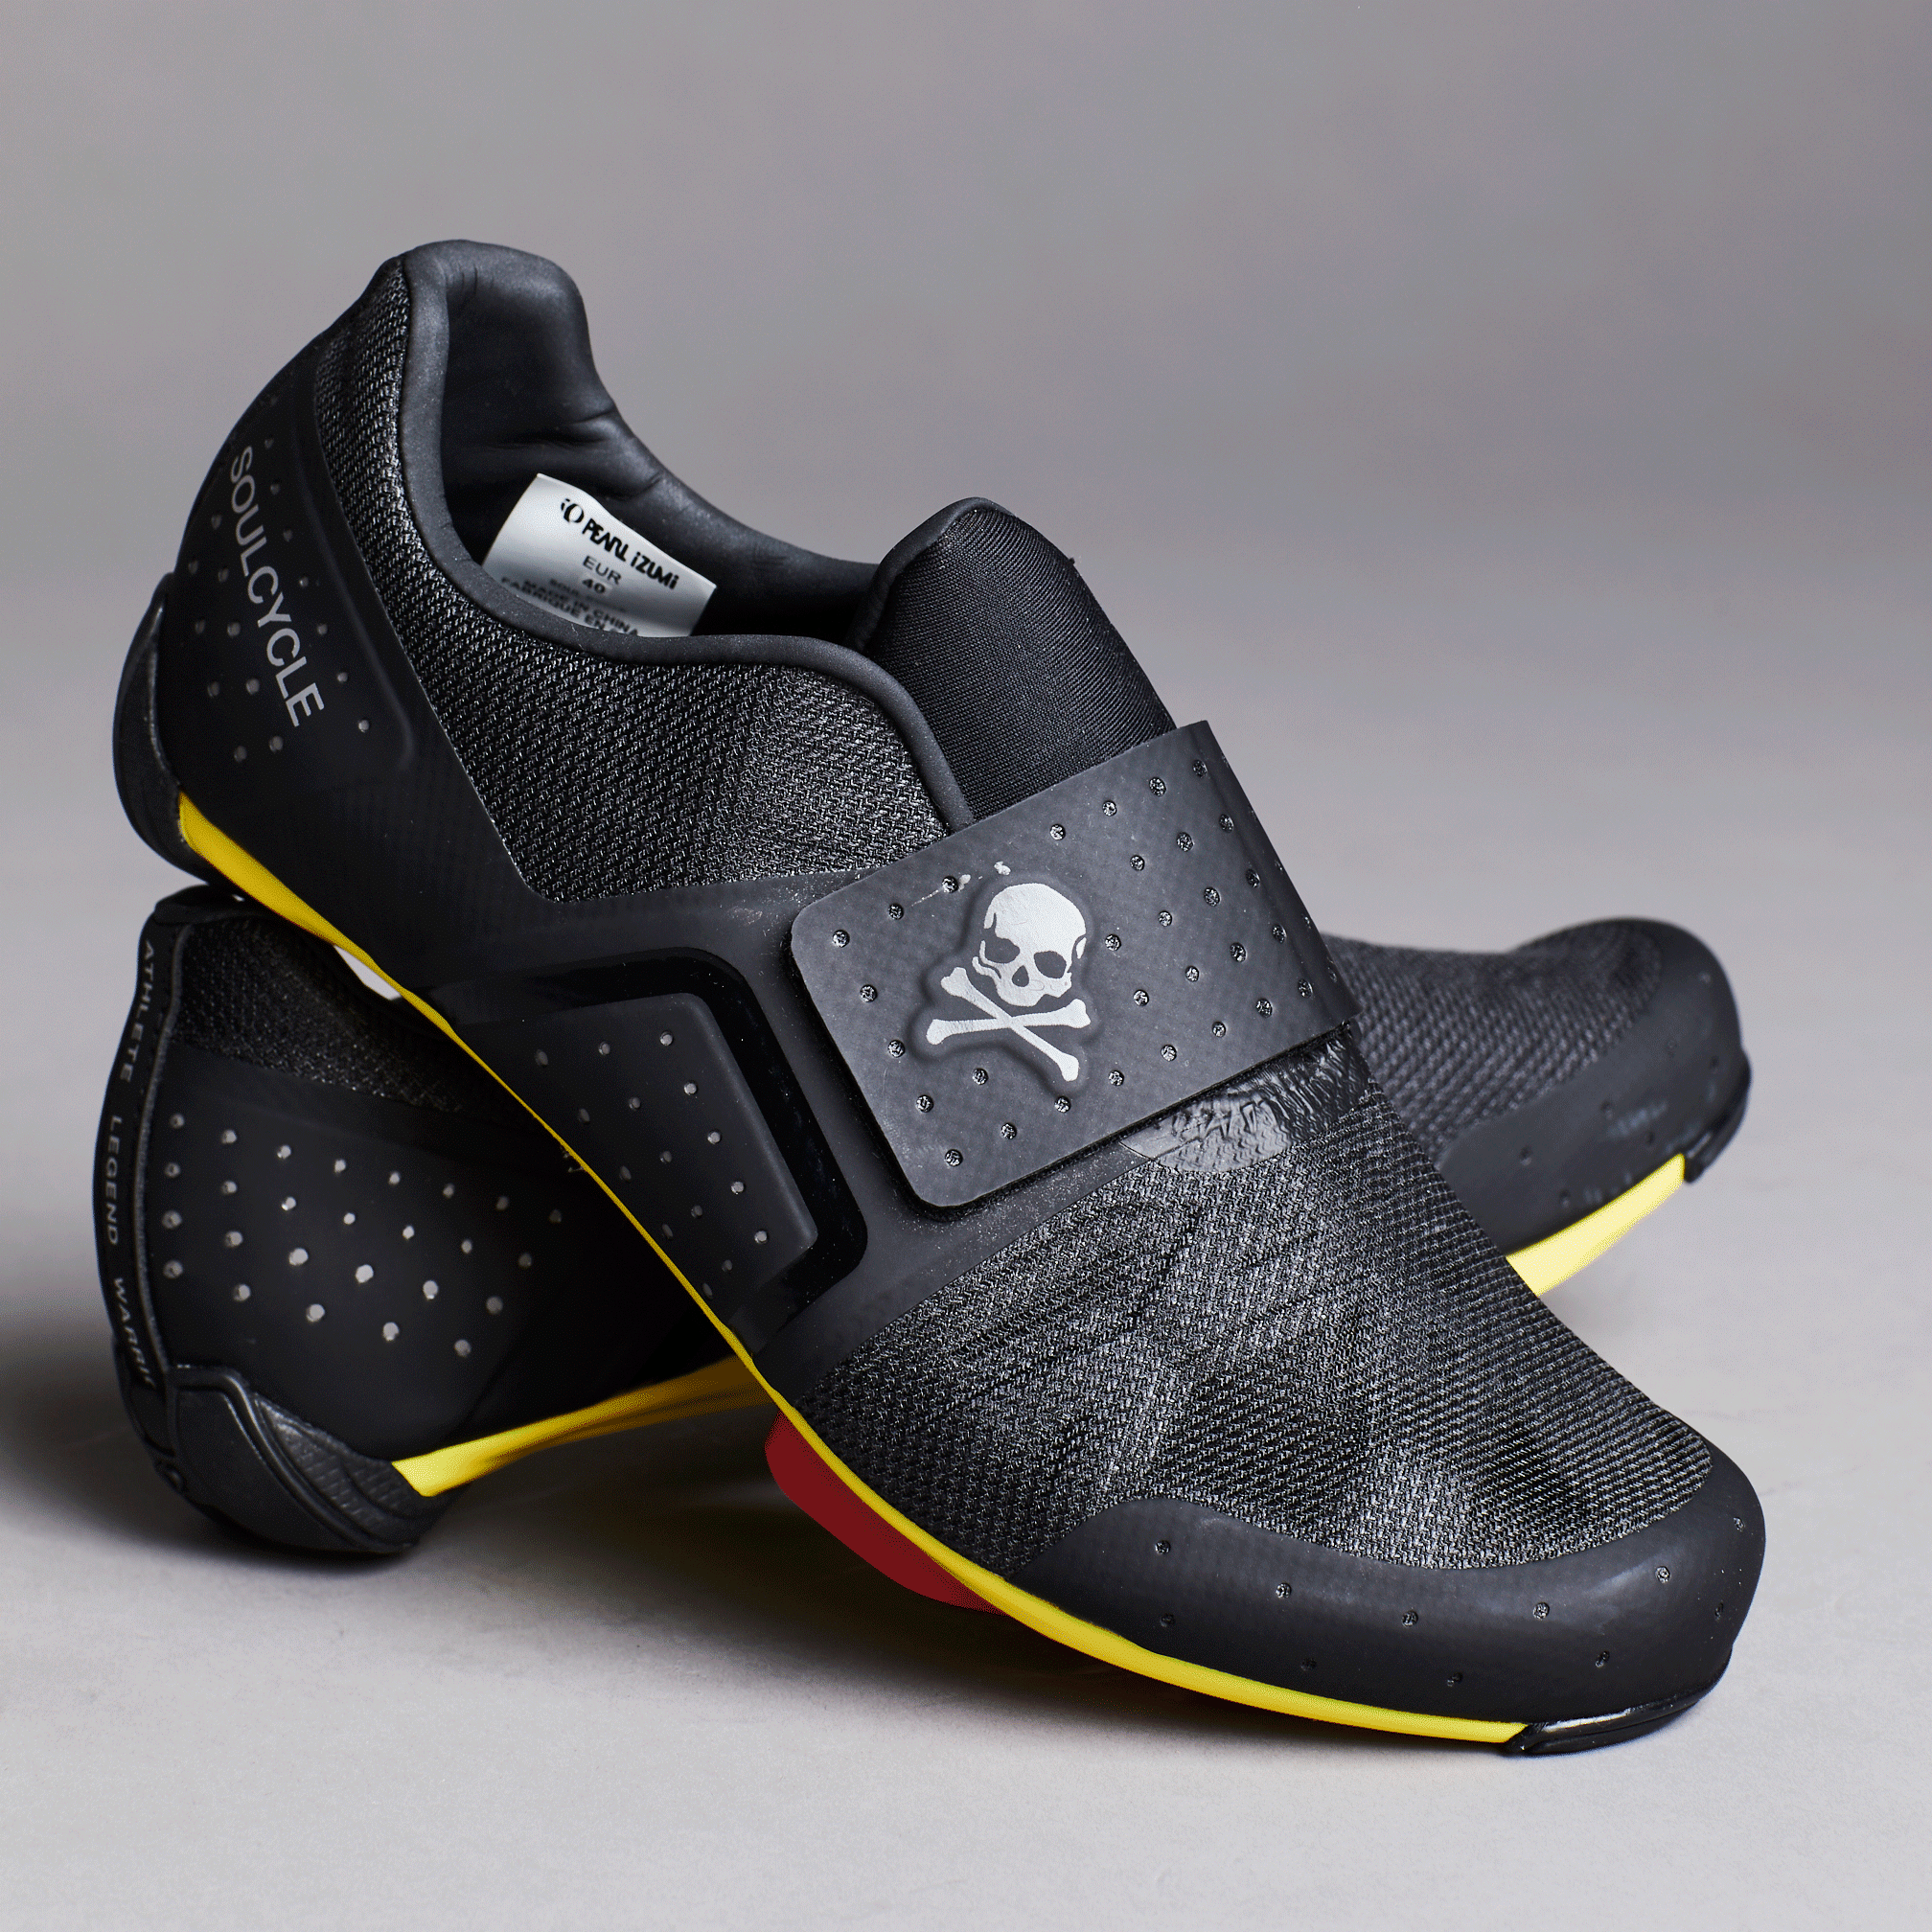 15 Best Cycling Shoes and Pedals of 2018 - Buying Guide and Reviews 16